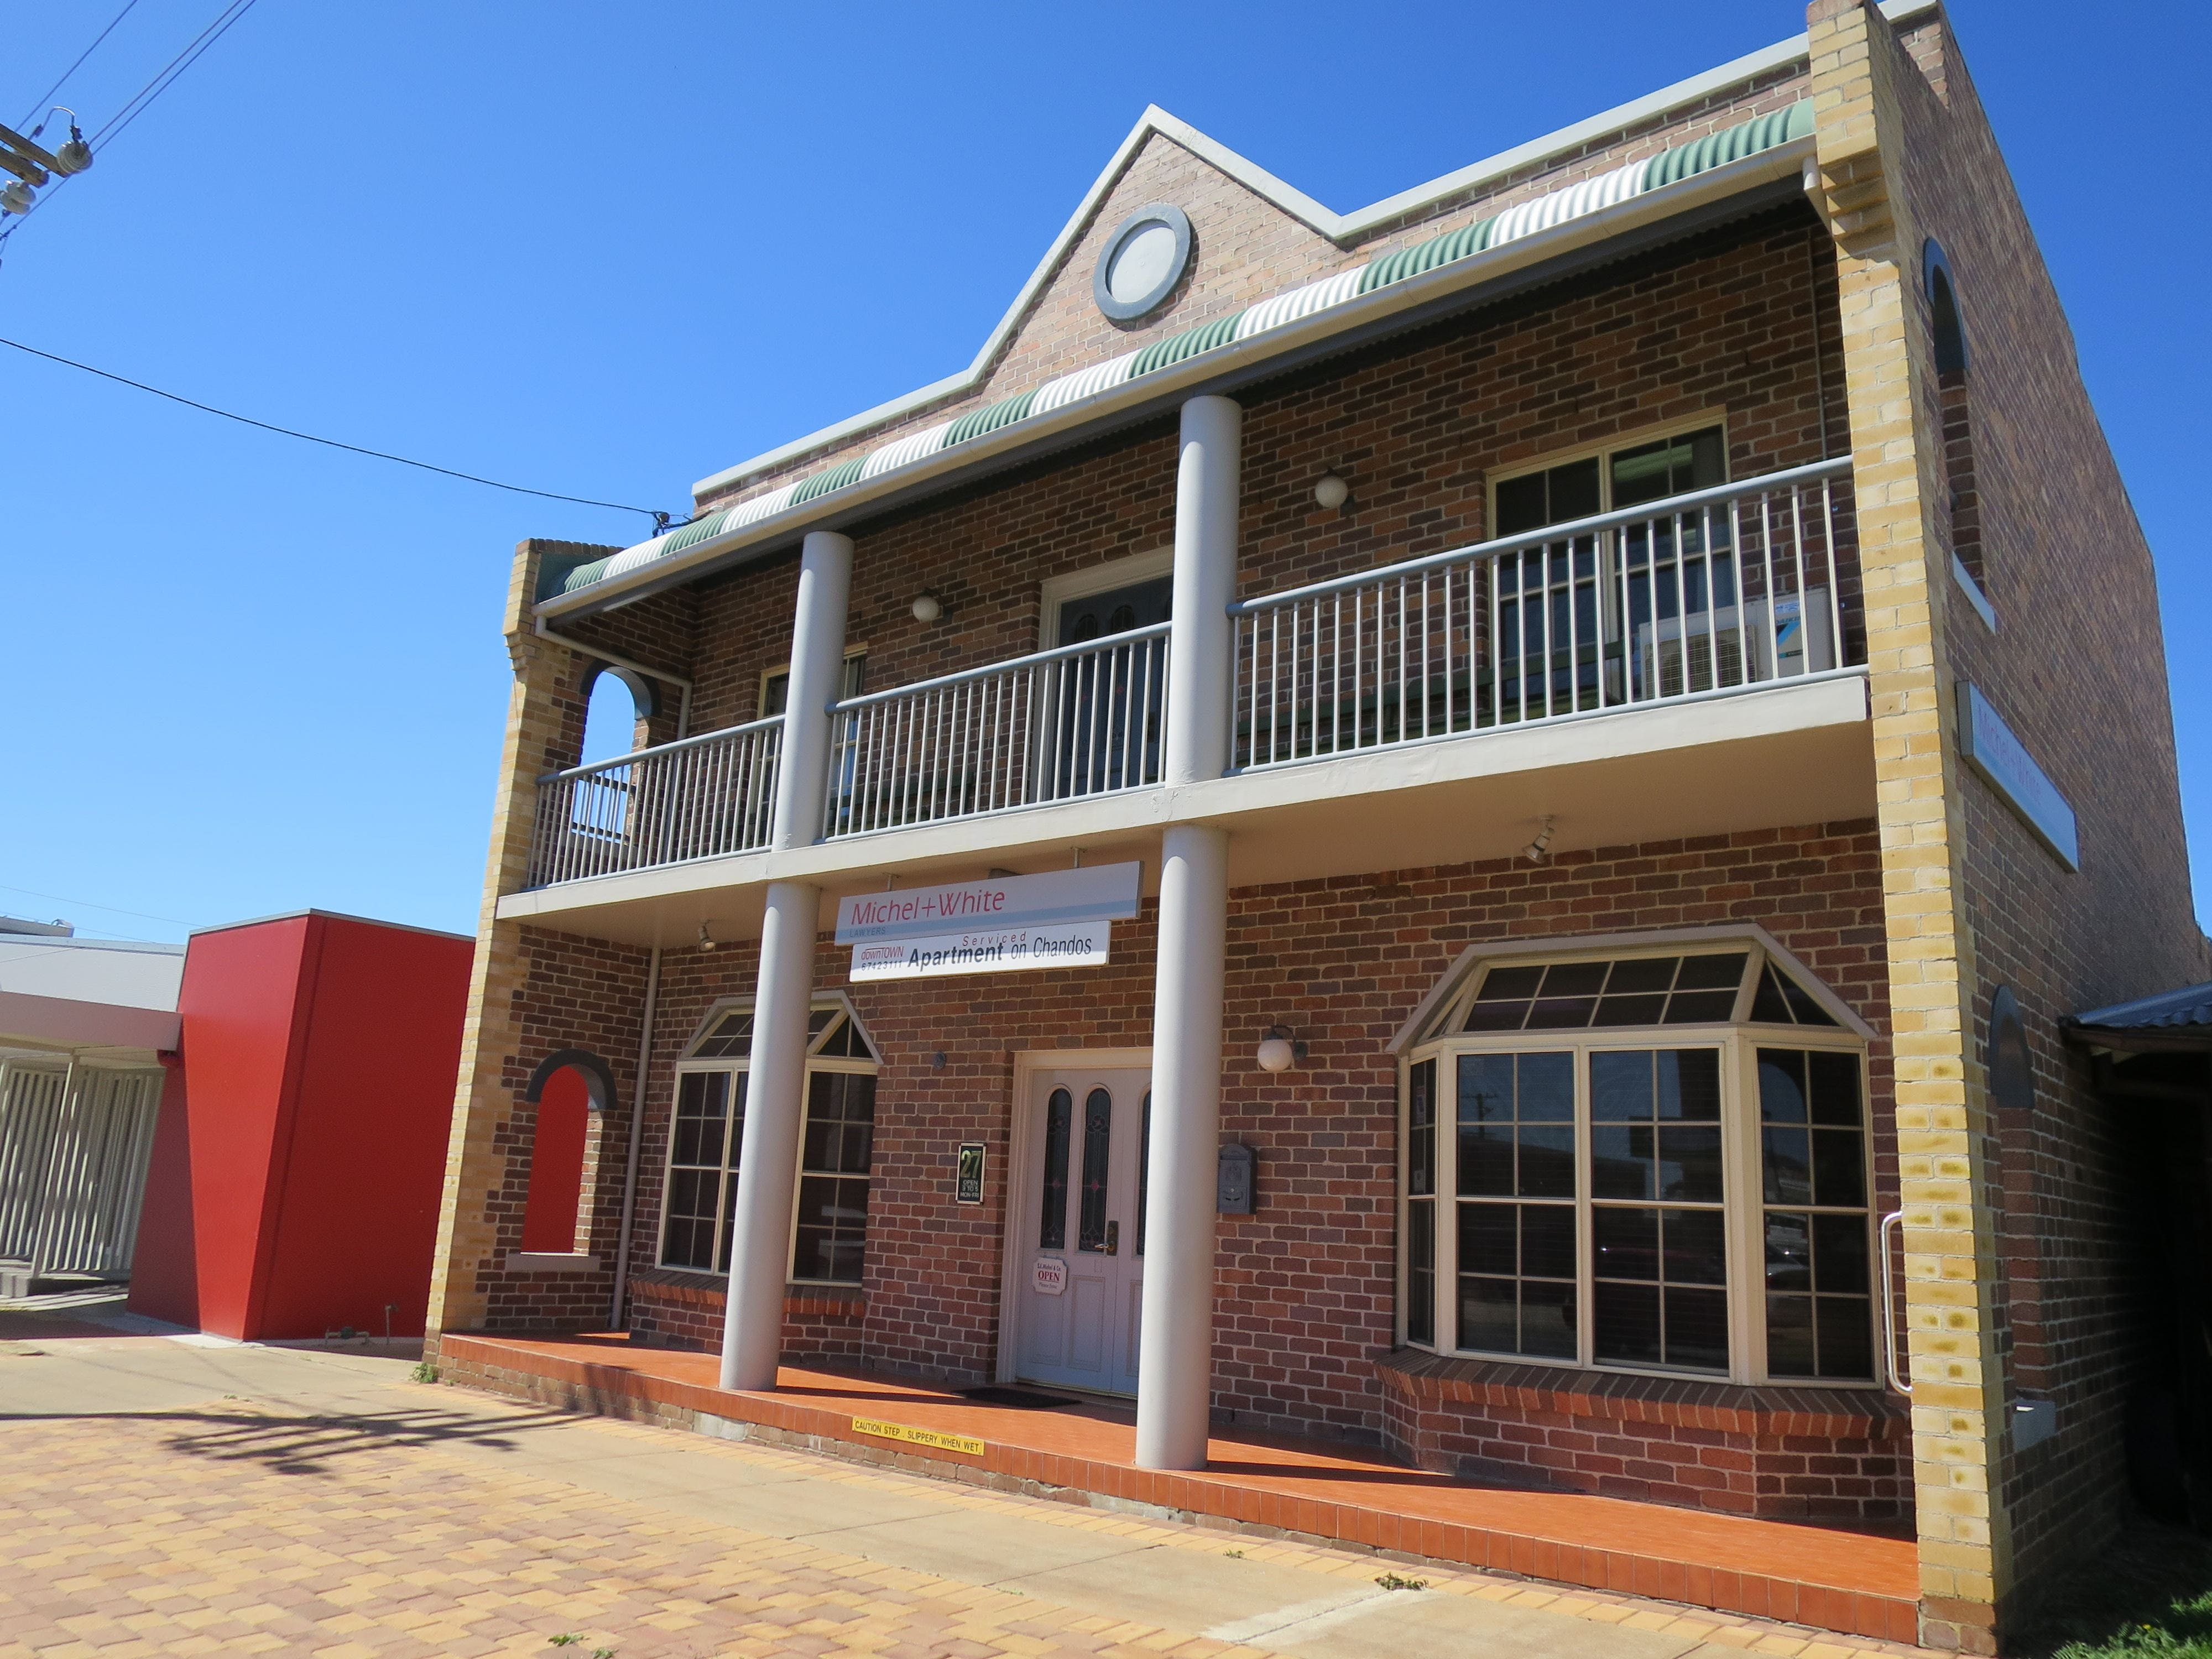 Downtown Apartment on Chandos - Accommodation Brunswick Heads